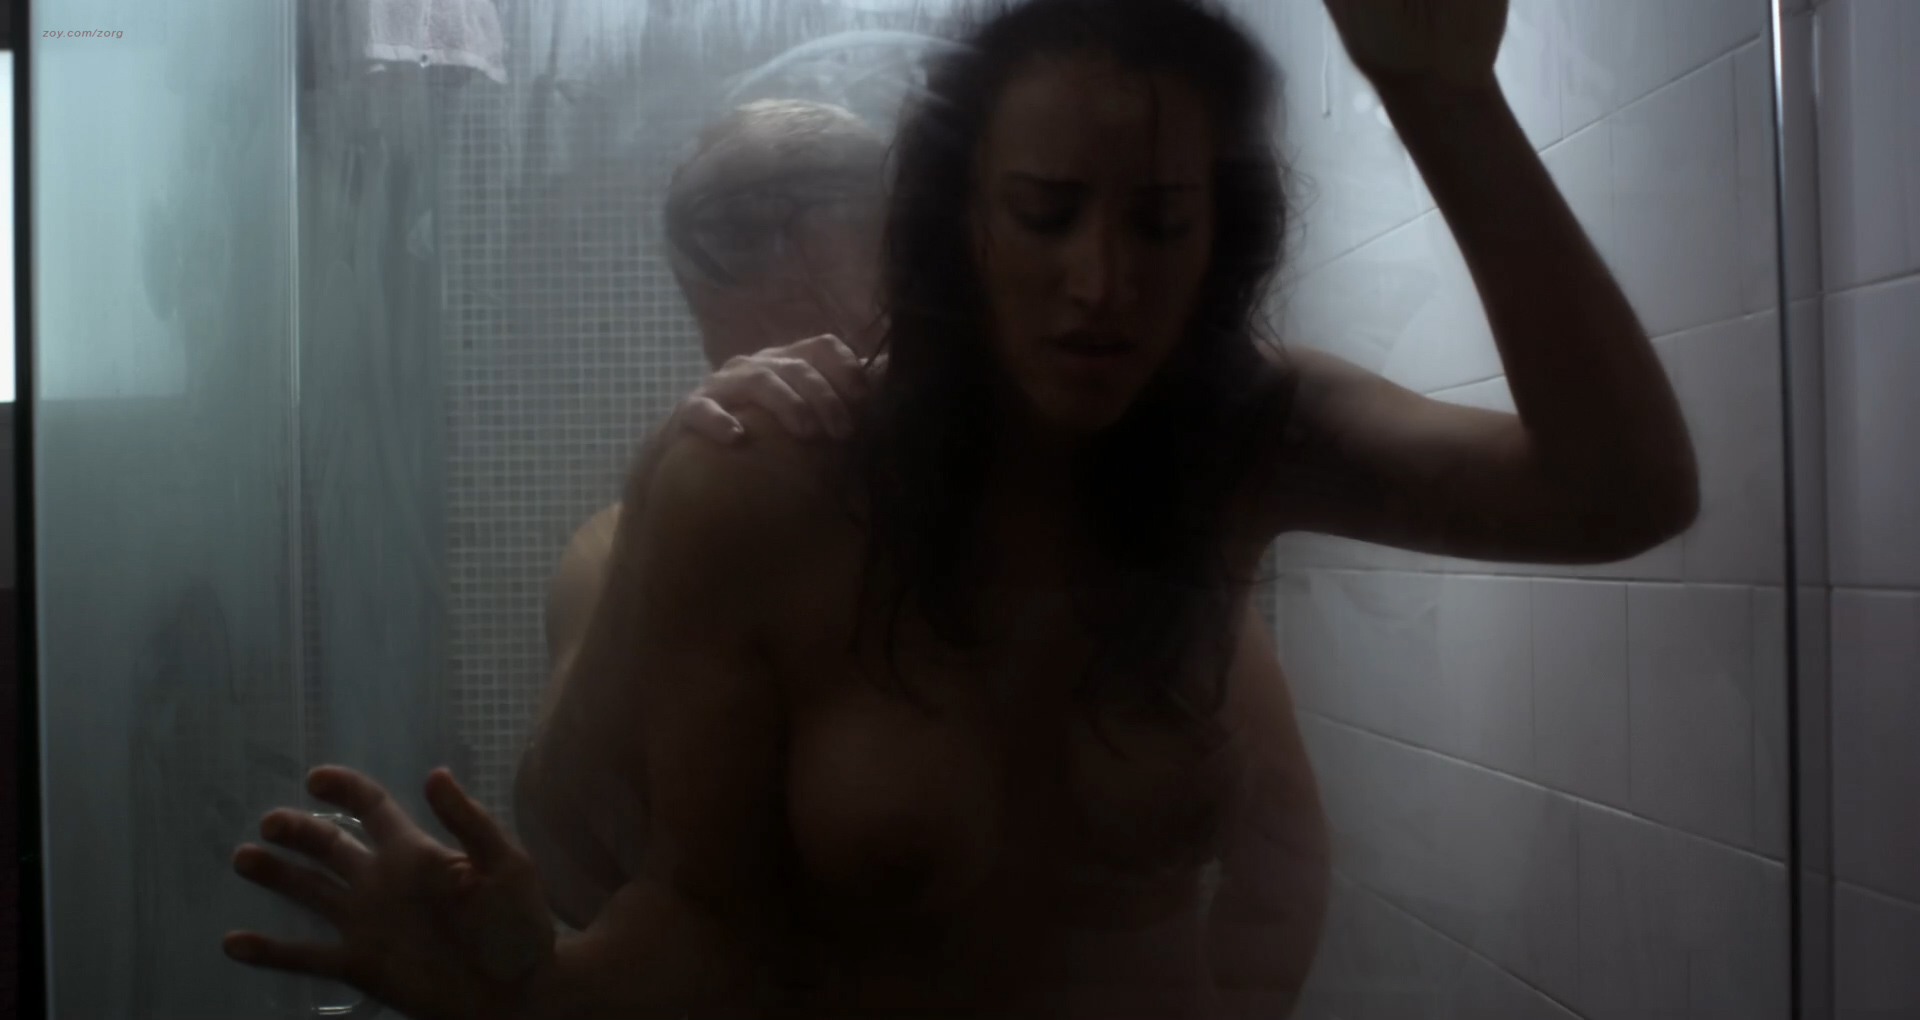 America Olivo Video Porno america olivo nude sex in the shower julie bowen hot not